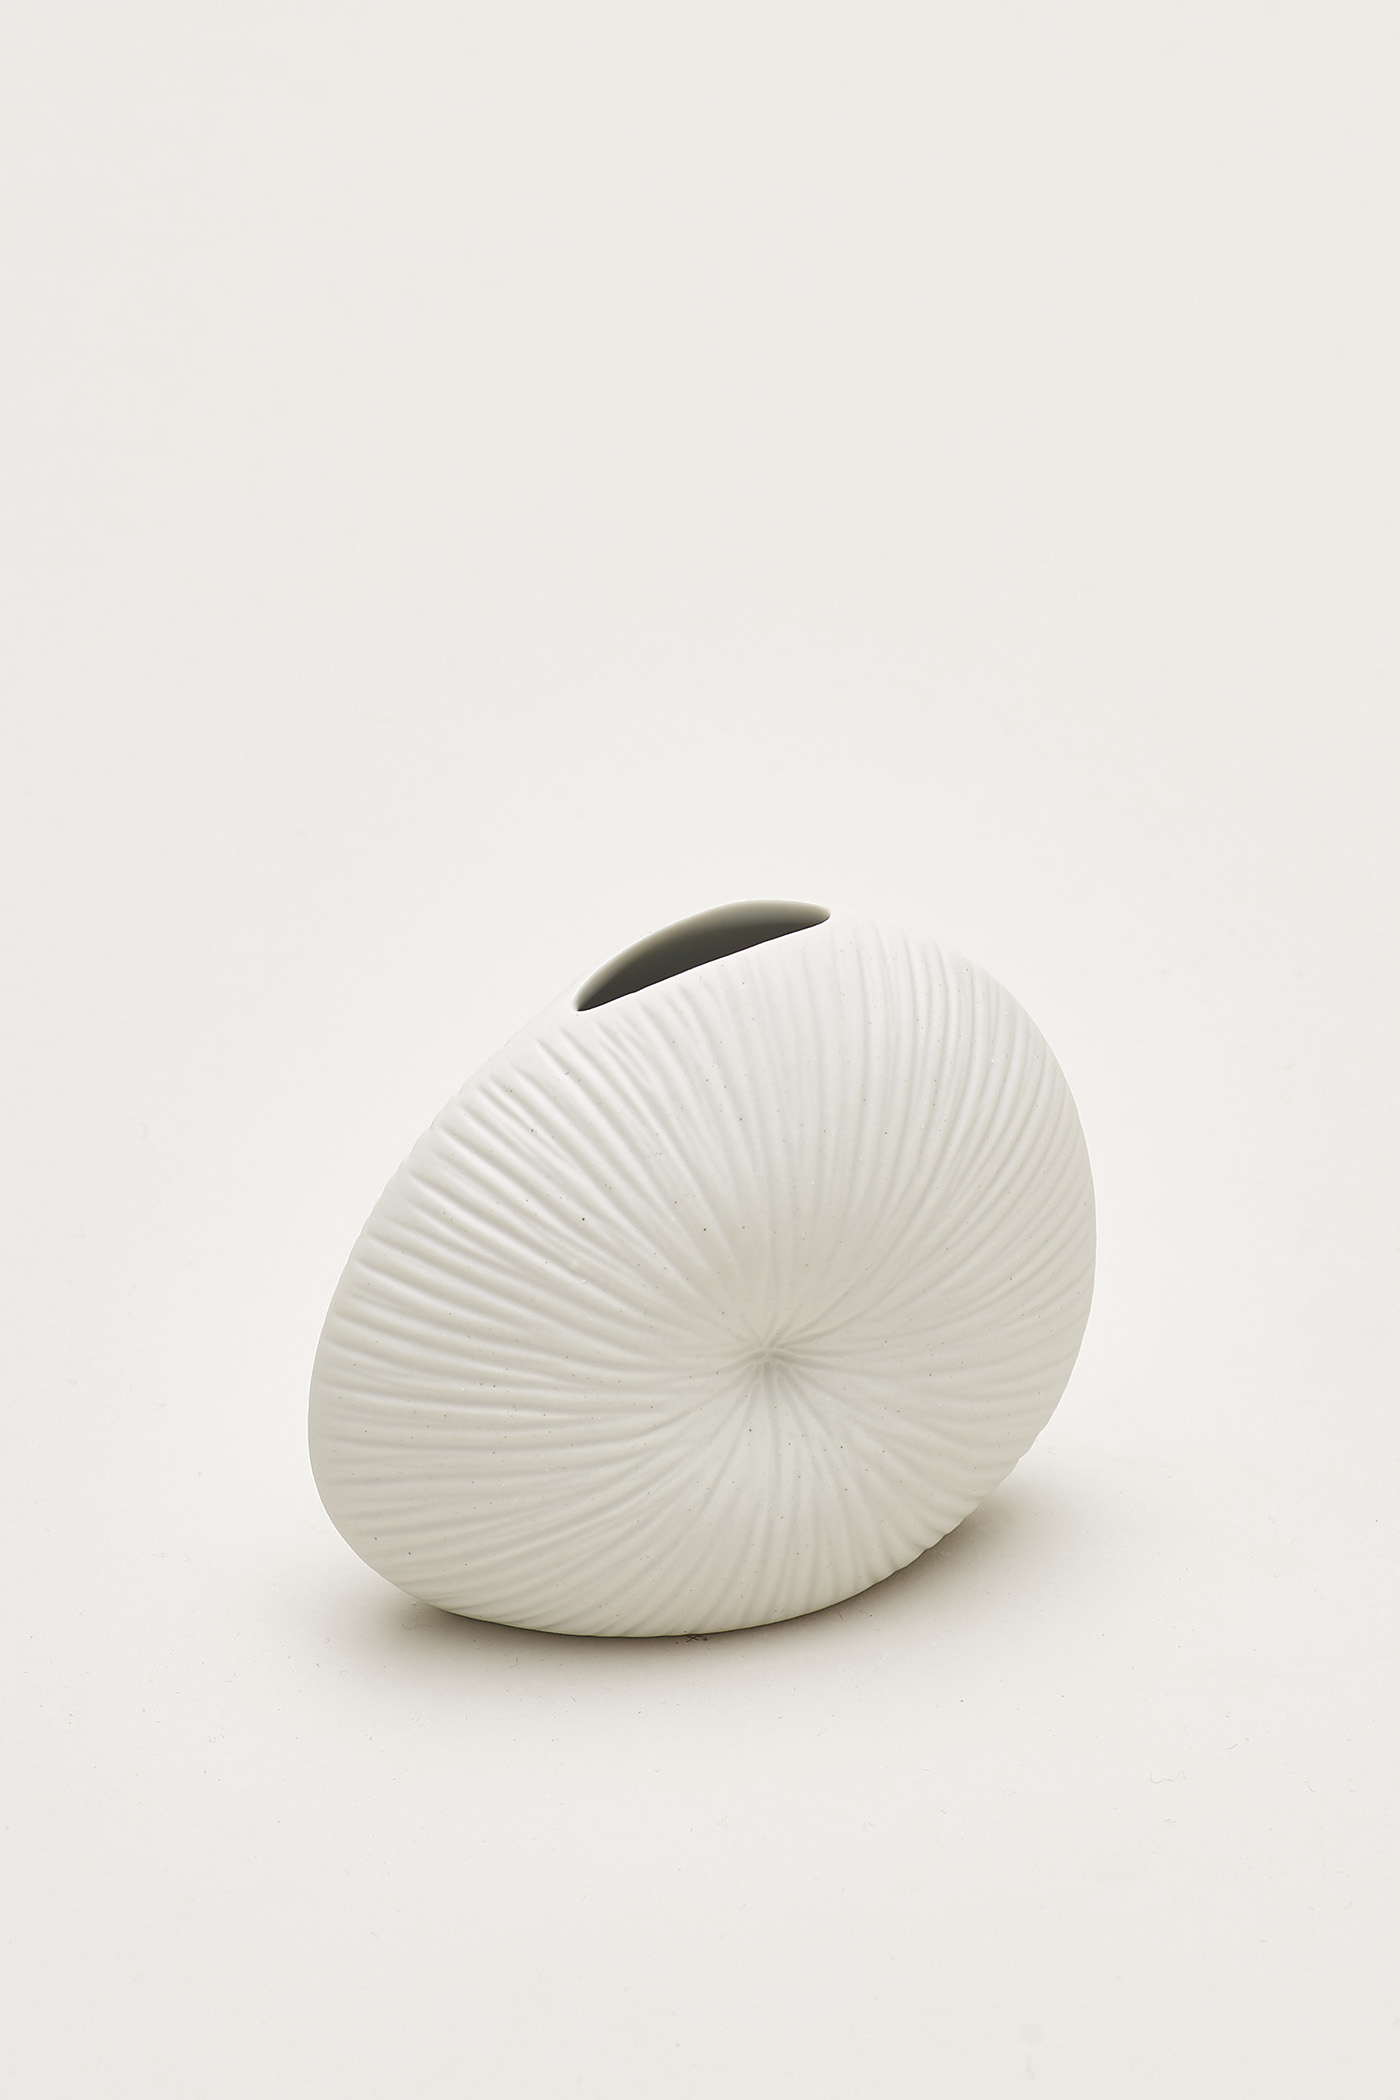 Irena Small Shell Vase